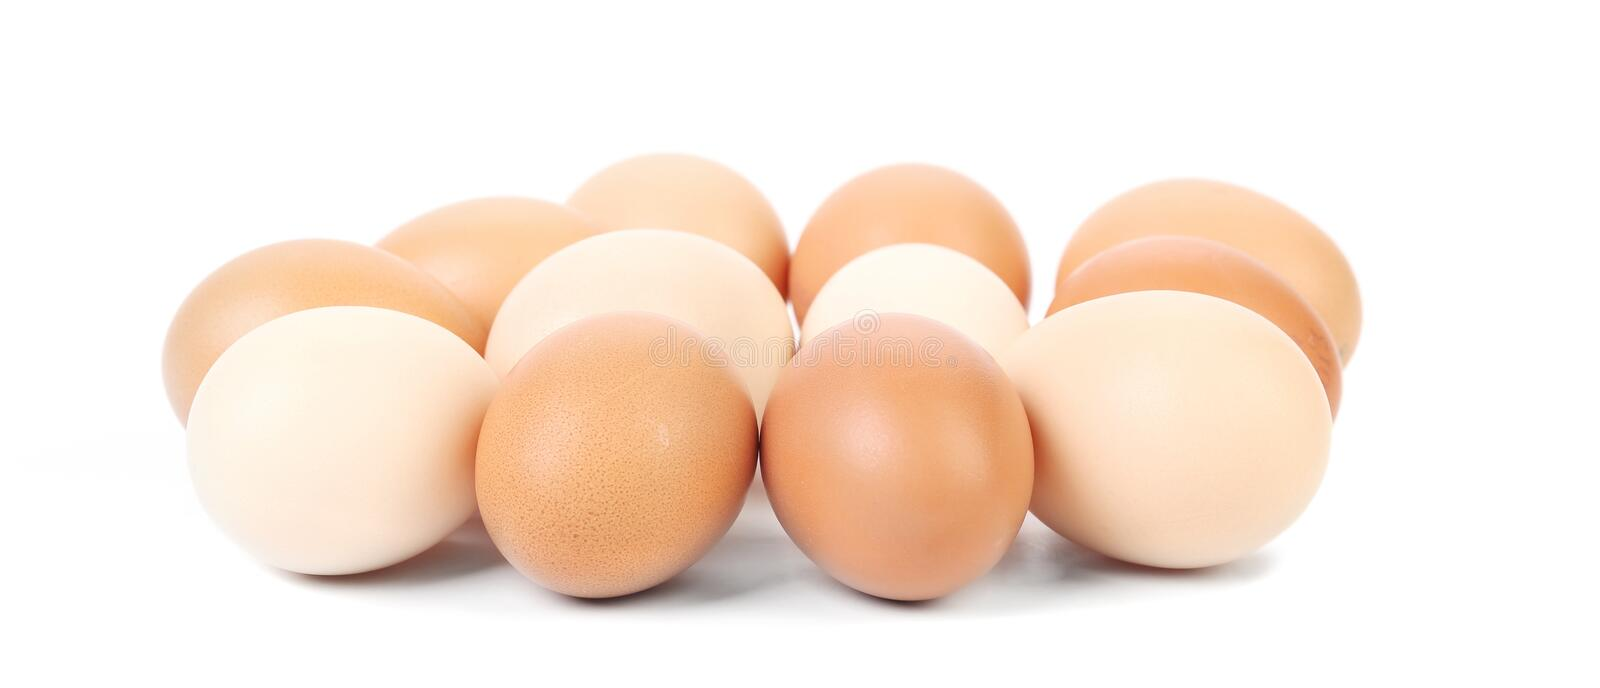 Brown and white eggs. On a white background stock photos